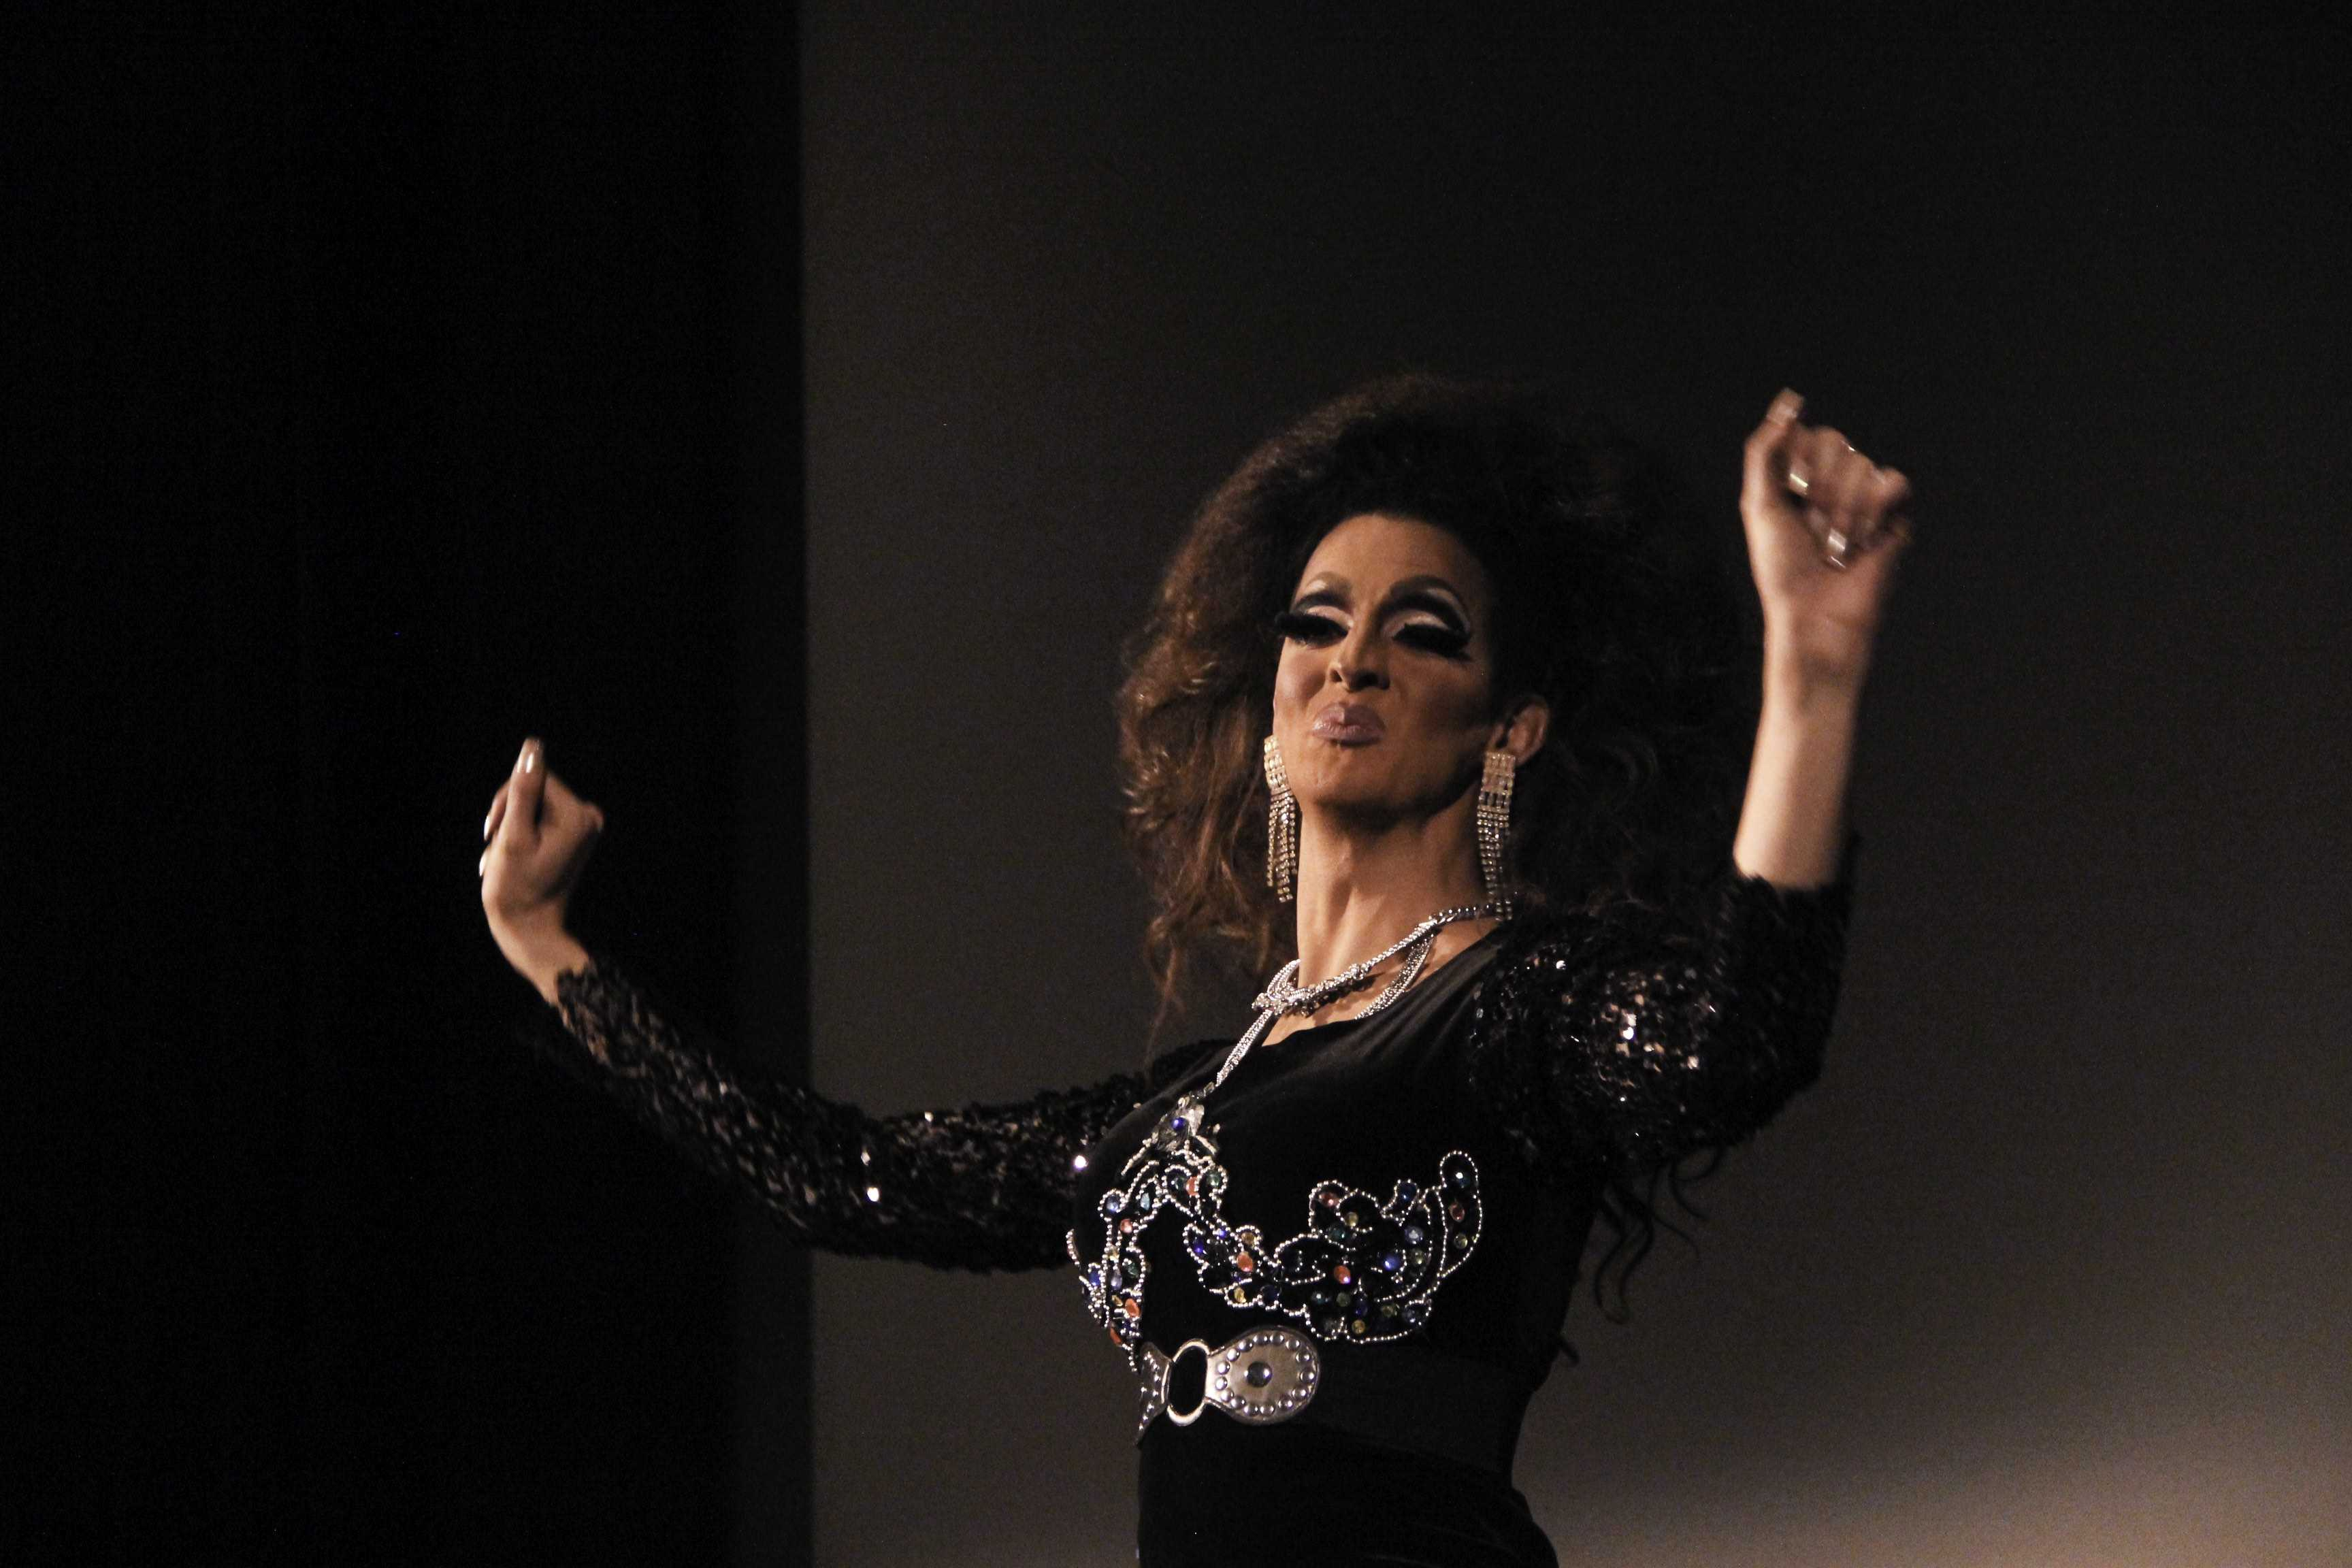 Local Akron drag queen Malibu Peru performed in the Student Union Theater on Tuesday as part of National Coming Out Day.